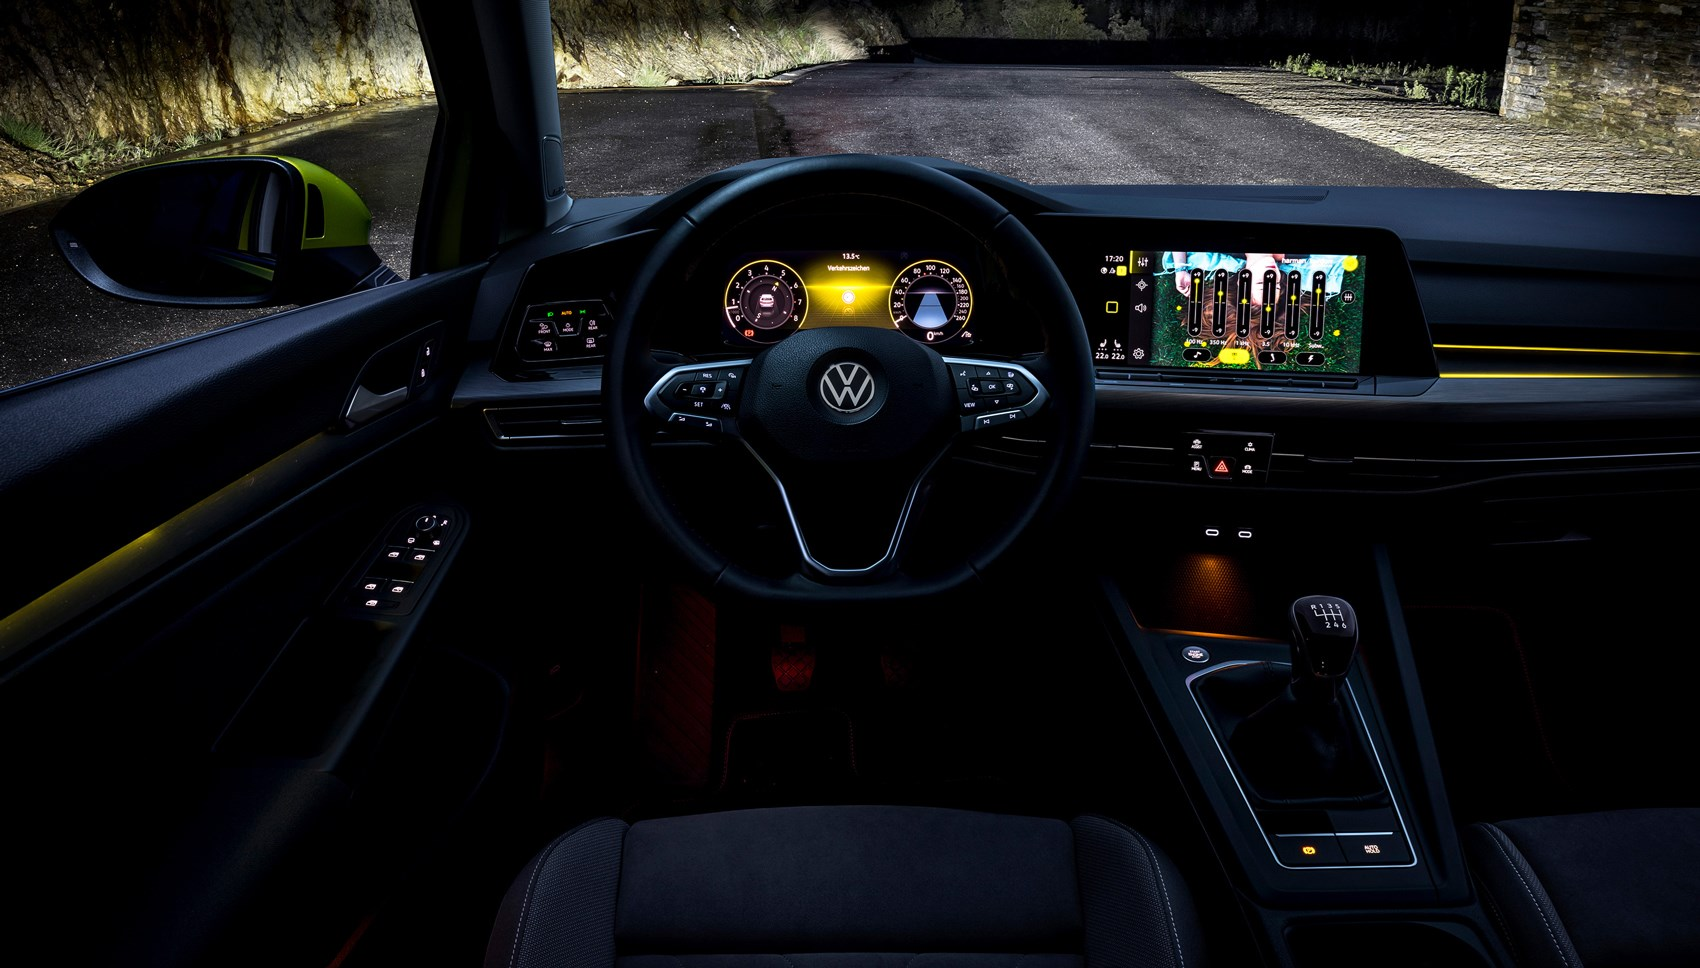 VW Golf interior dark